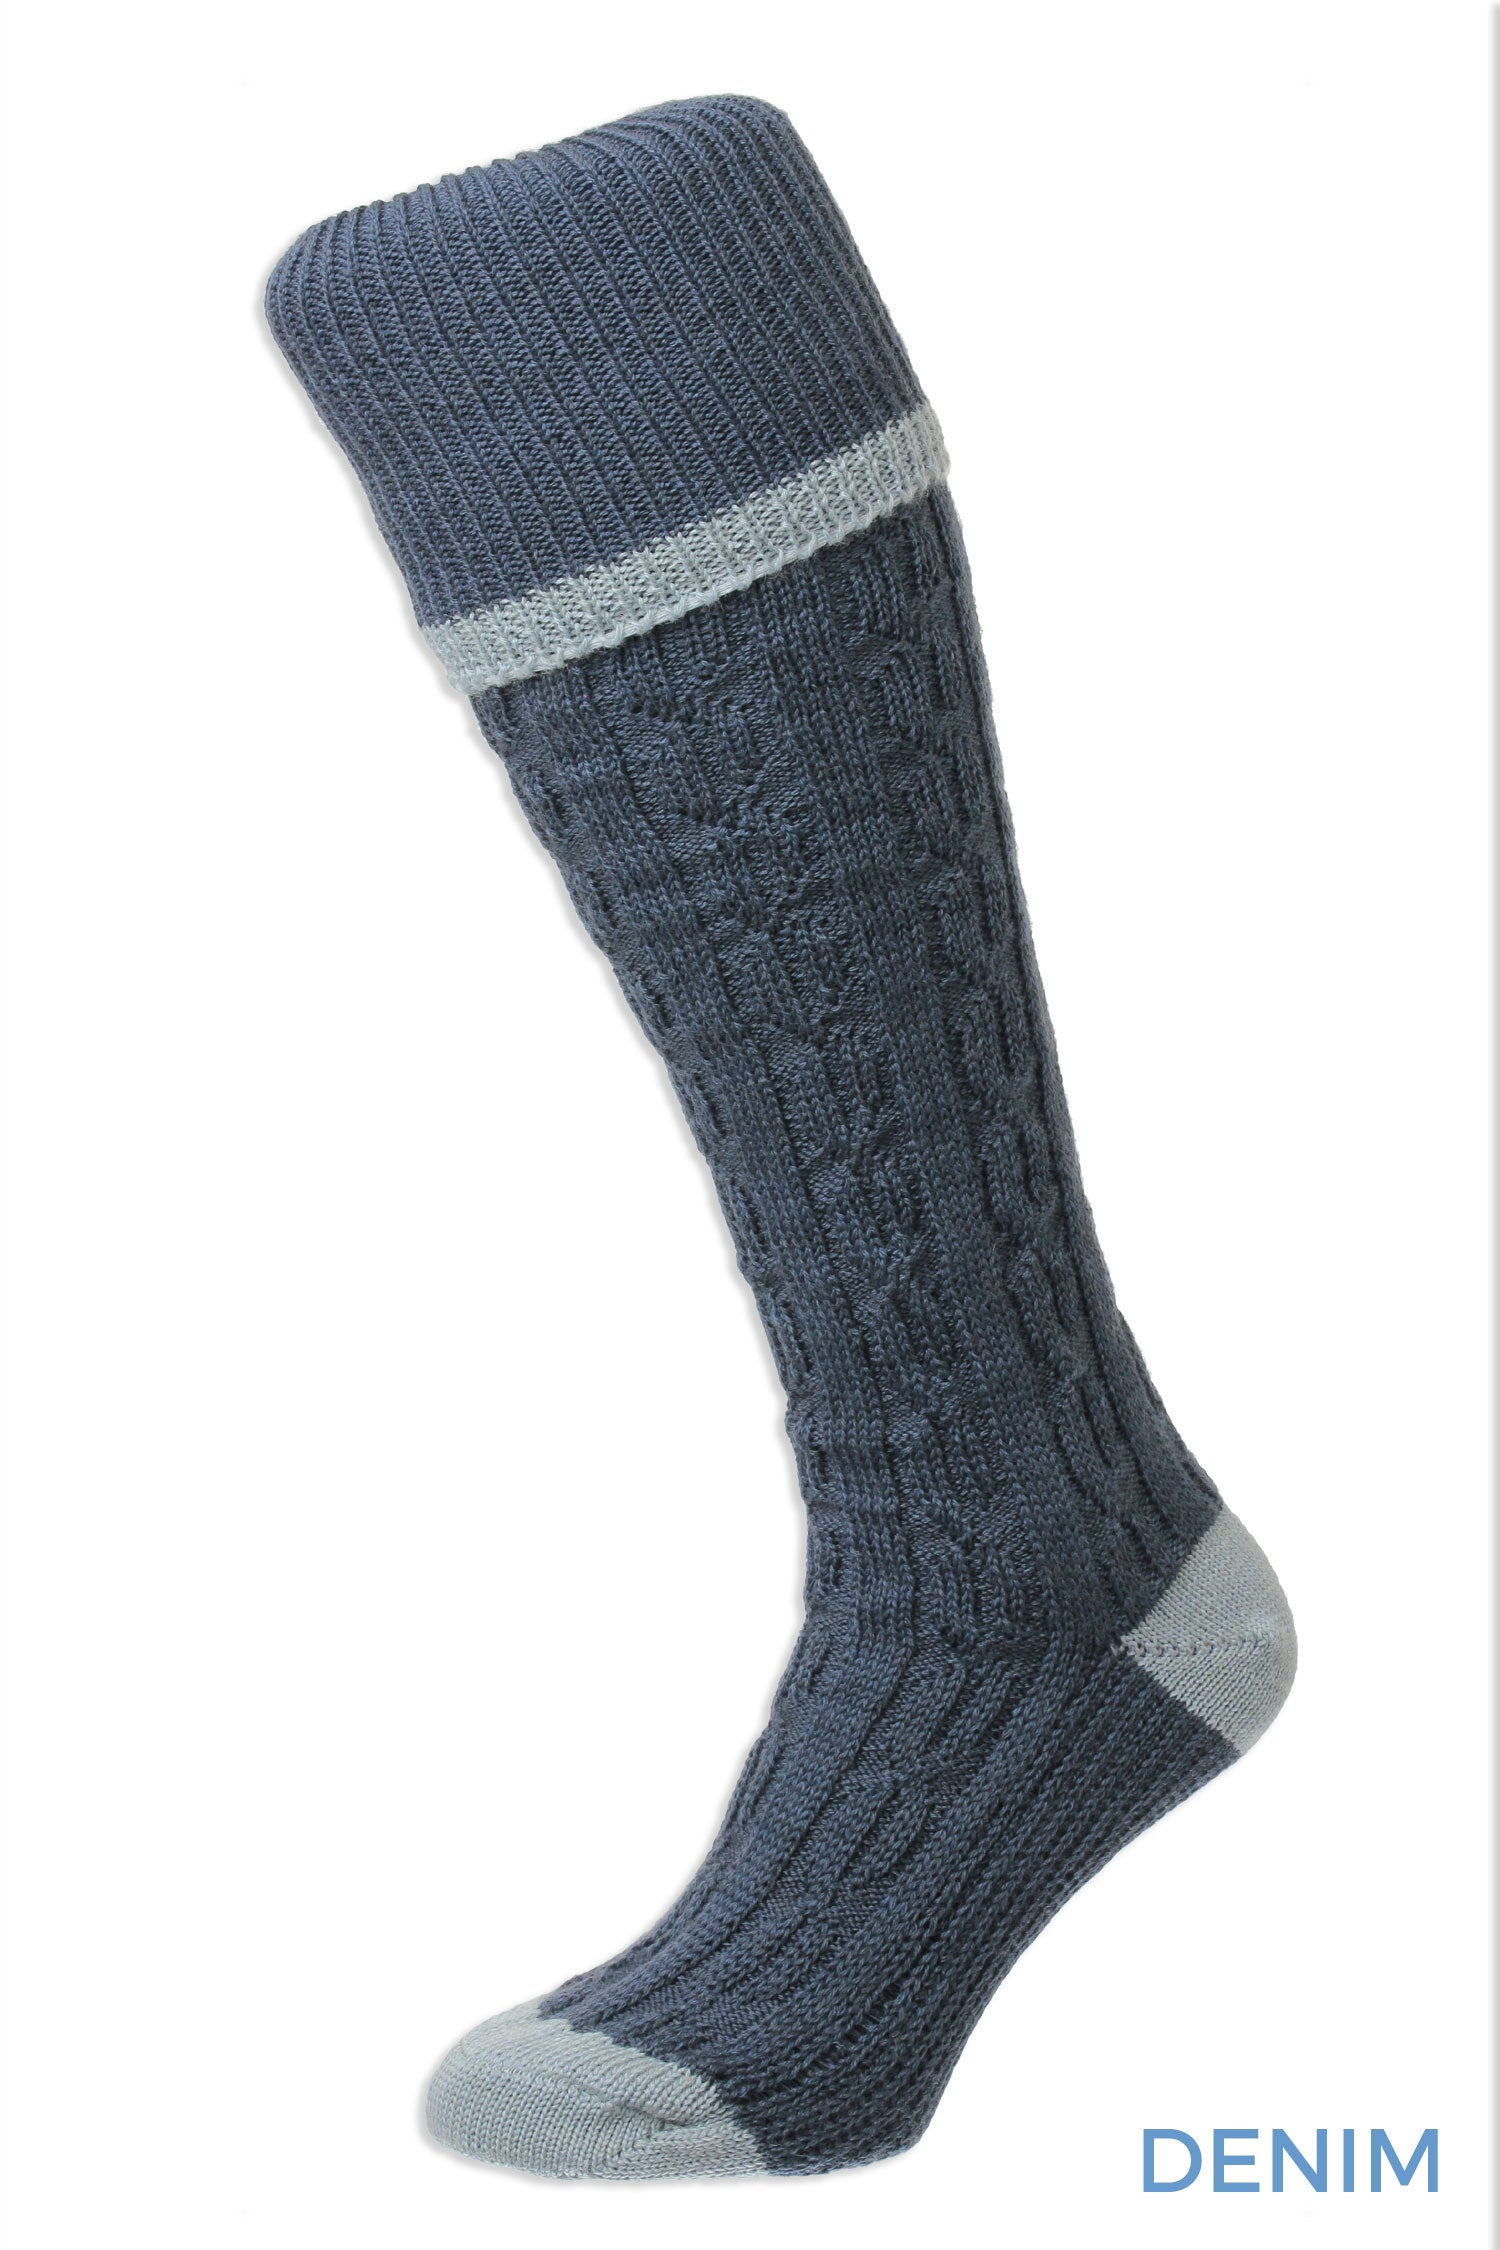 Denim Premium quality cable knee socks with turn over tops featuring at contrast colour at the toe, heel and top.